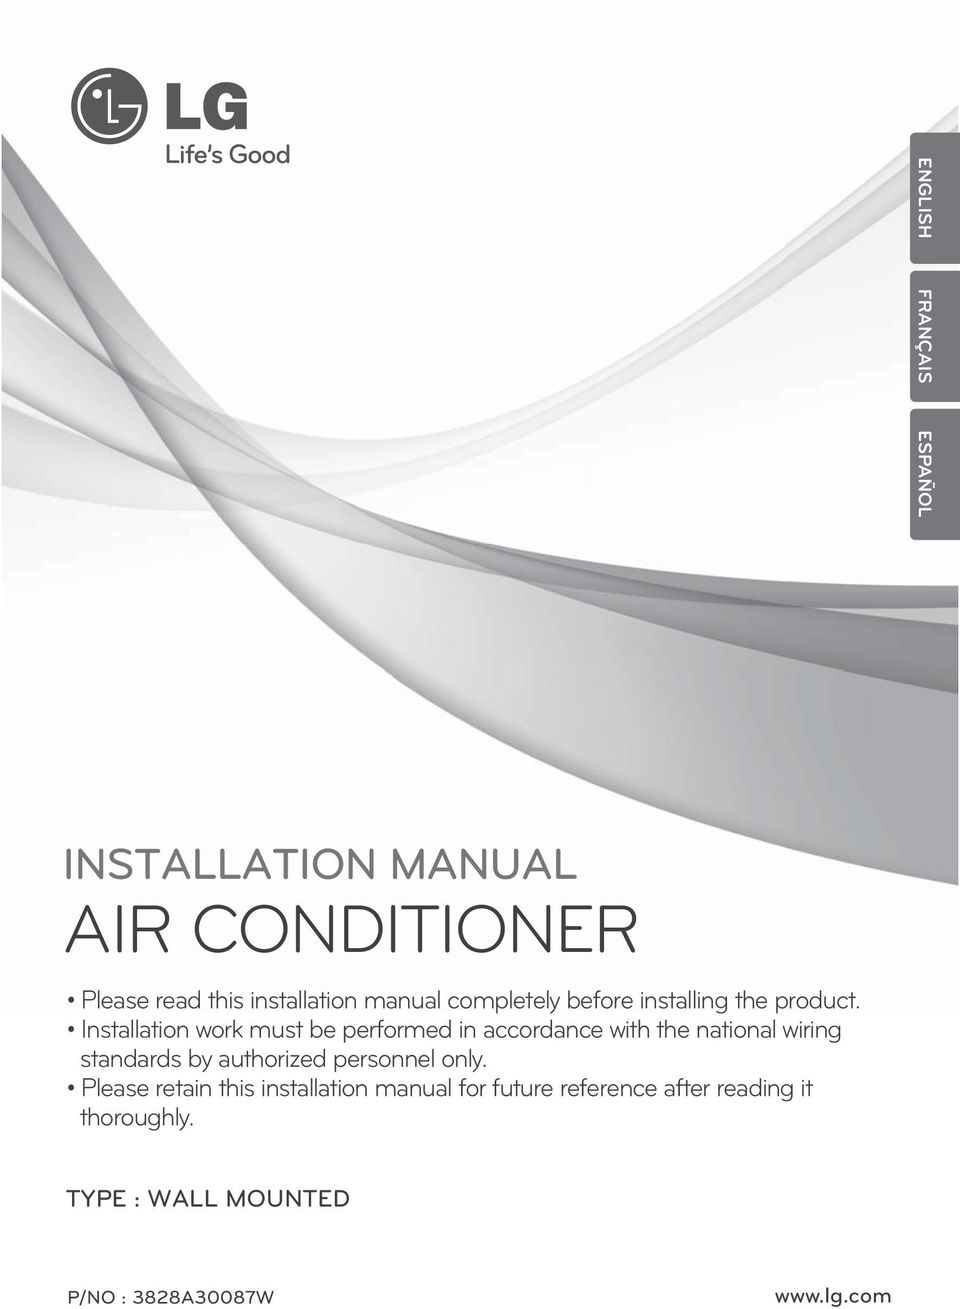 Air Conditioner Installation Manual Pdf Free Download